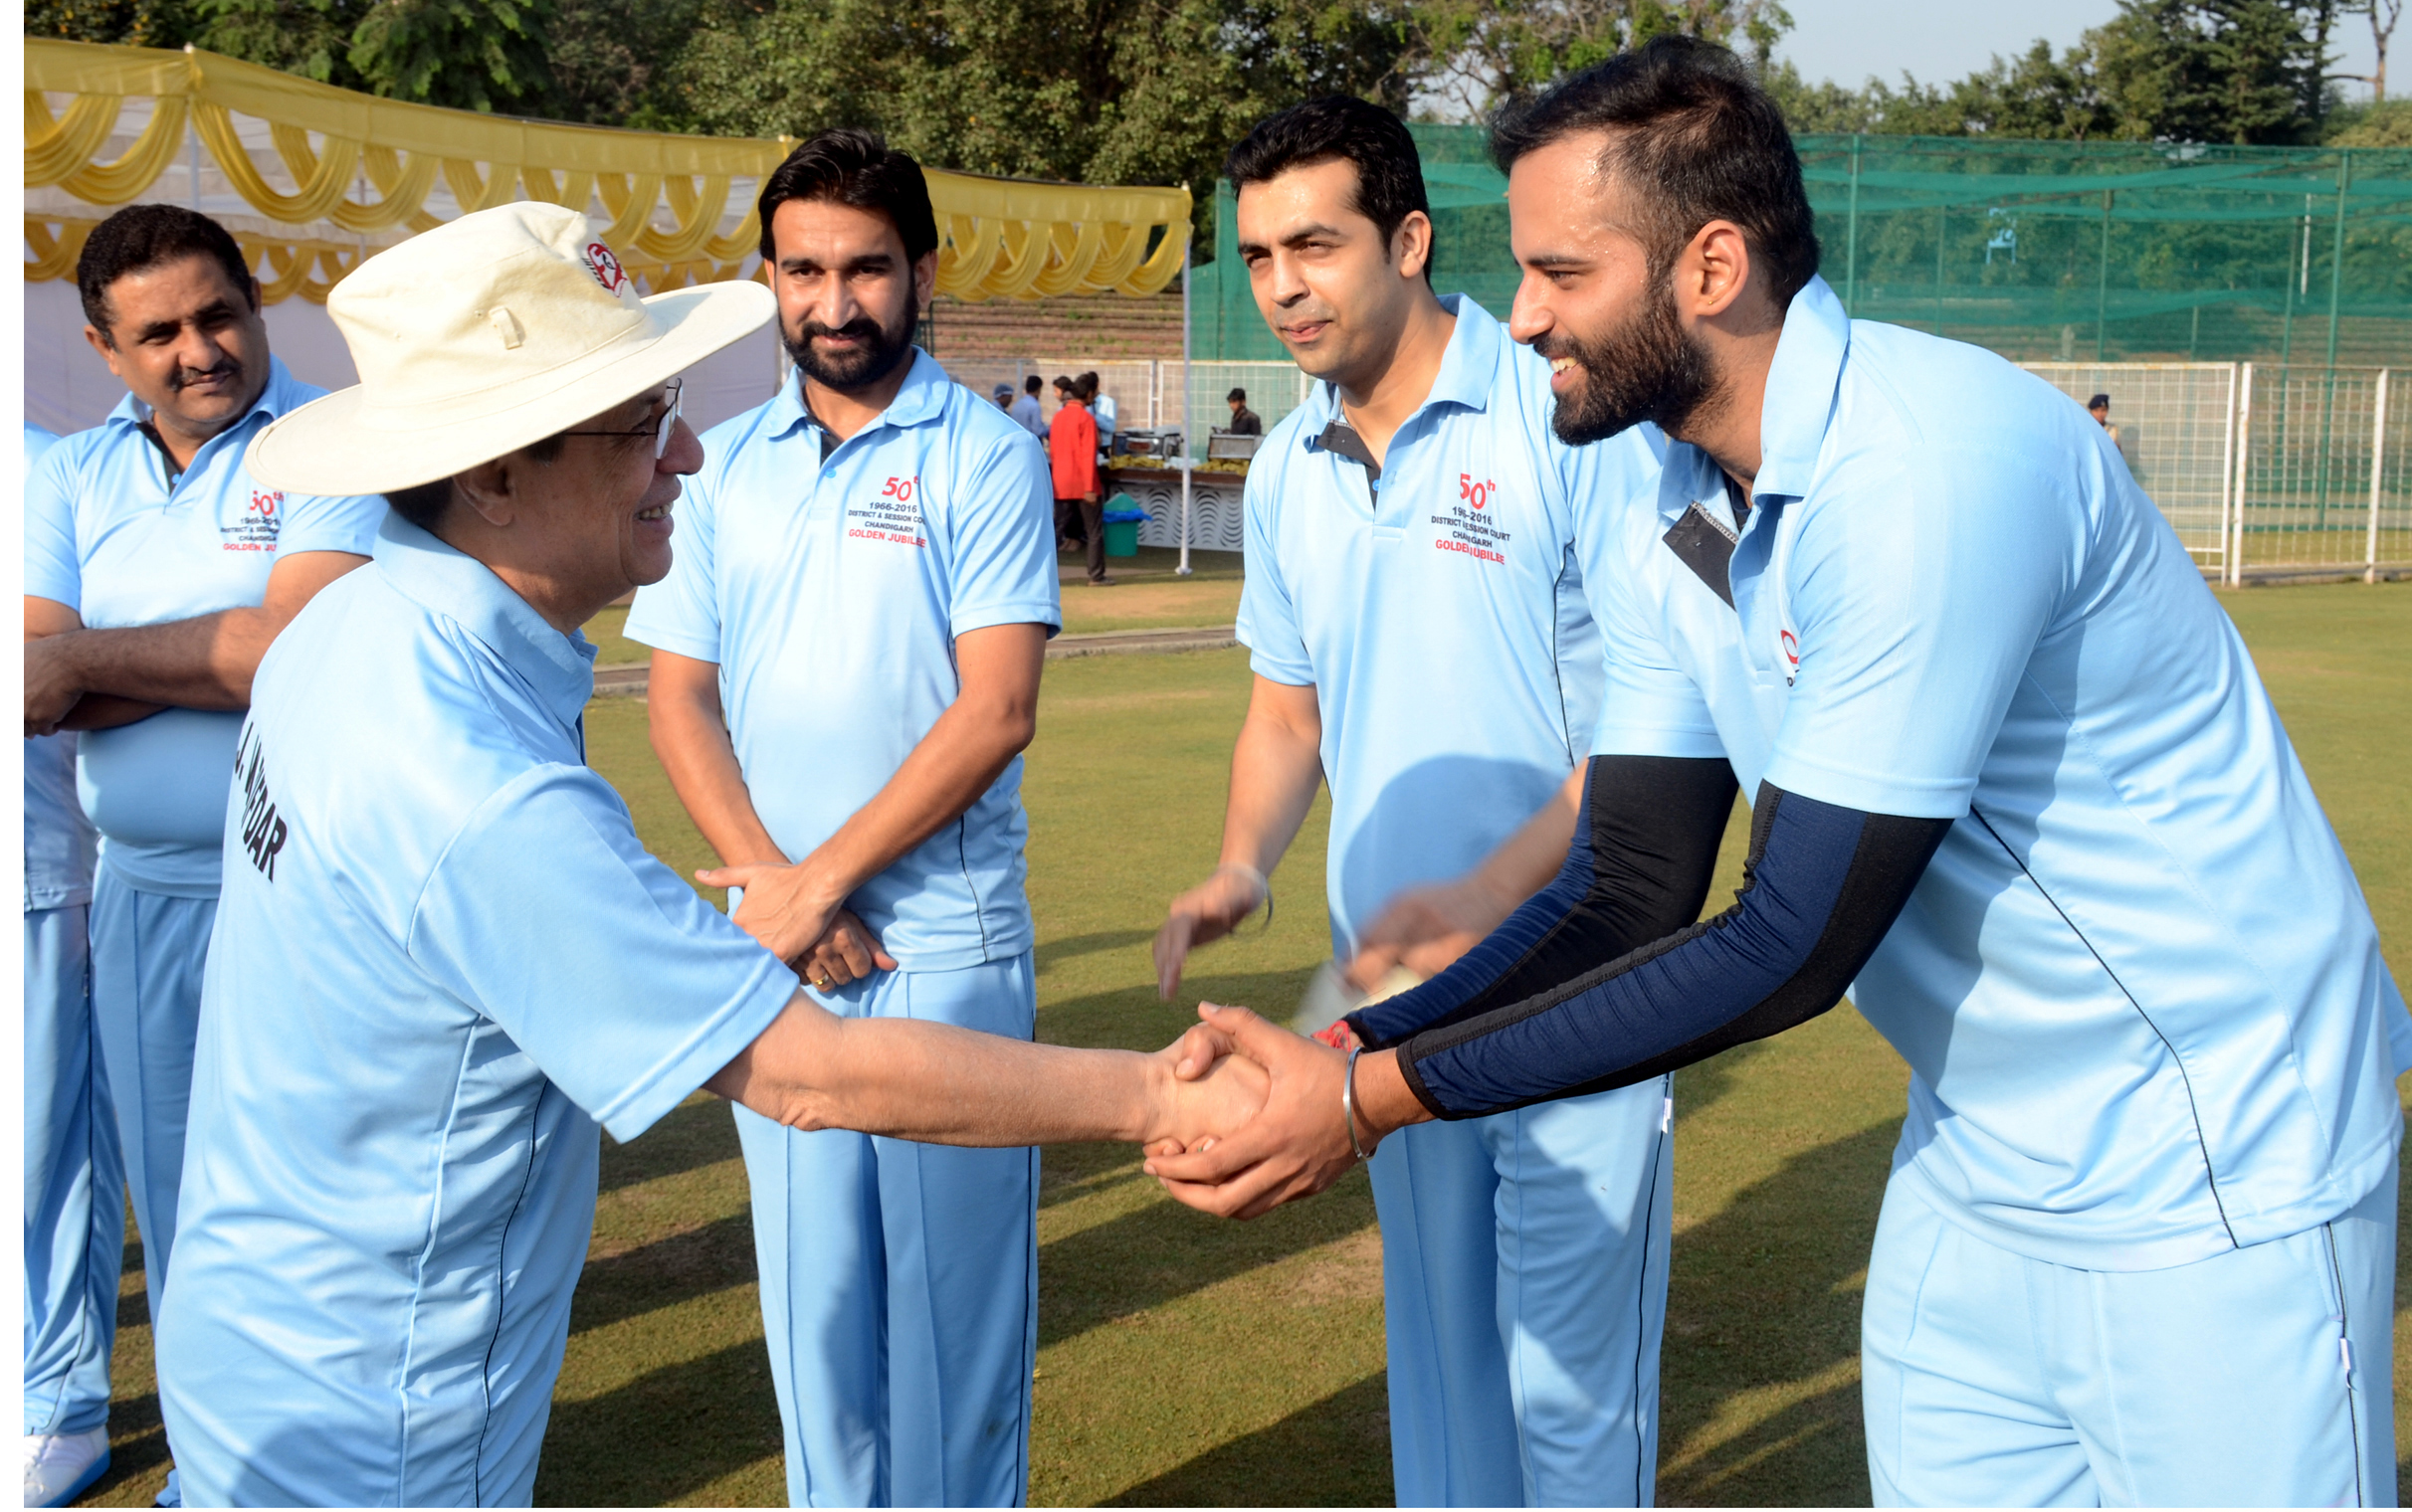 Hon�ble Mr. Justice Shiavax Jal Vazifdar, Chief Justice, Punjab & Haryana High Court, Chandigarh being introduced with the players at the inauguration of friendly Cricket Match between the bar and the Bench at Cricket Stadium, Sector-16, Chandigarh  on Saturday, October 22, 2016.